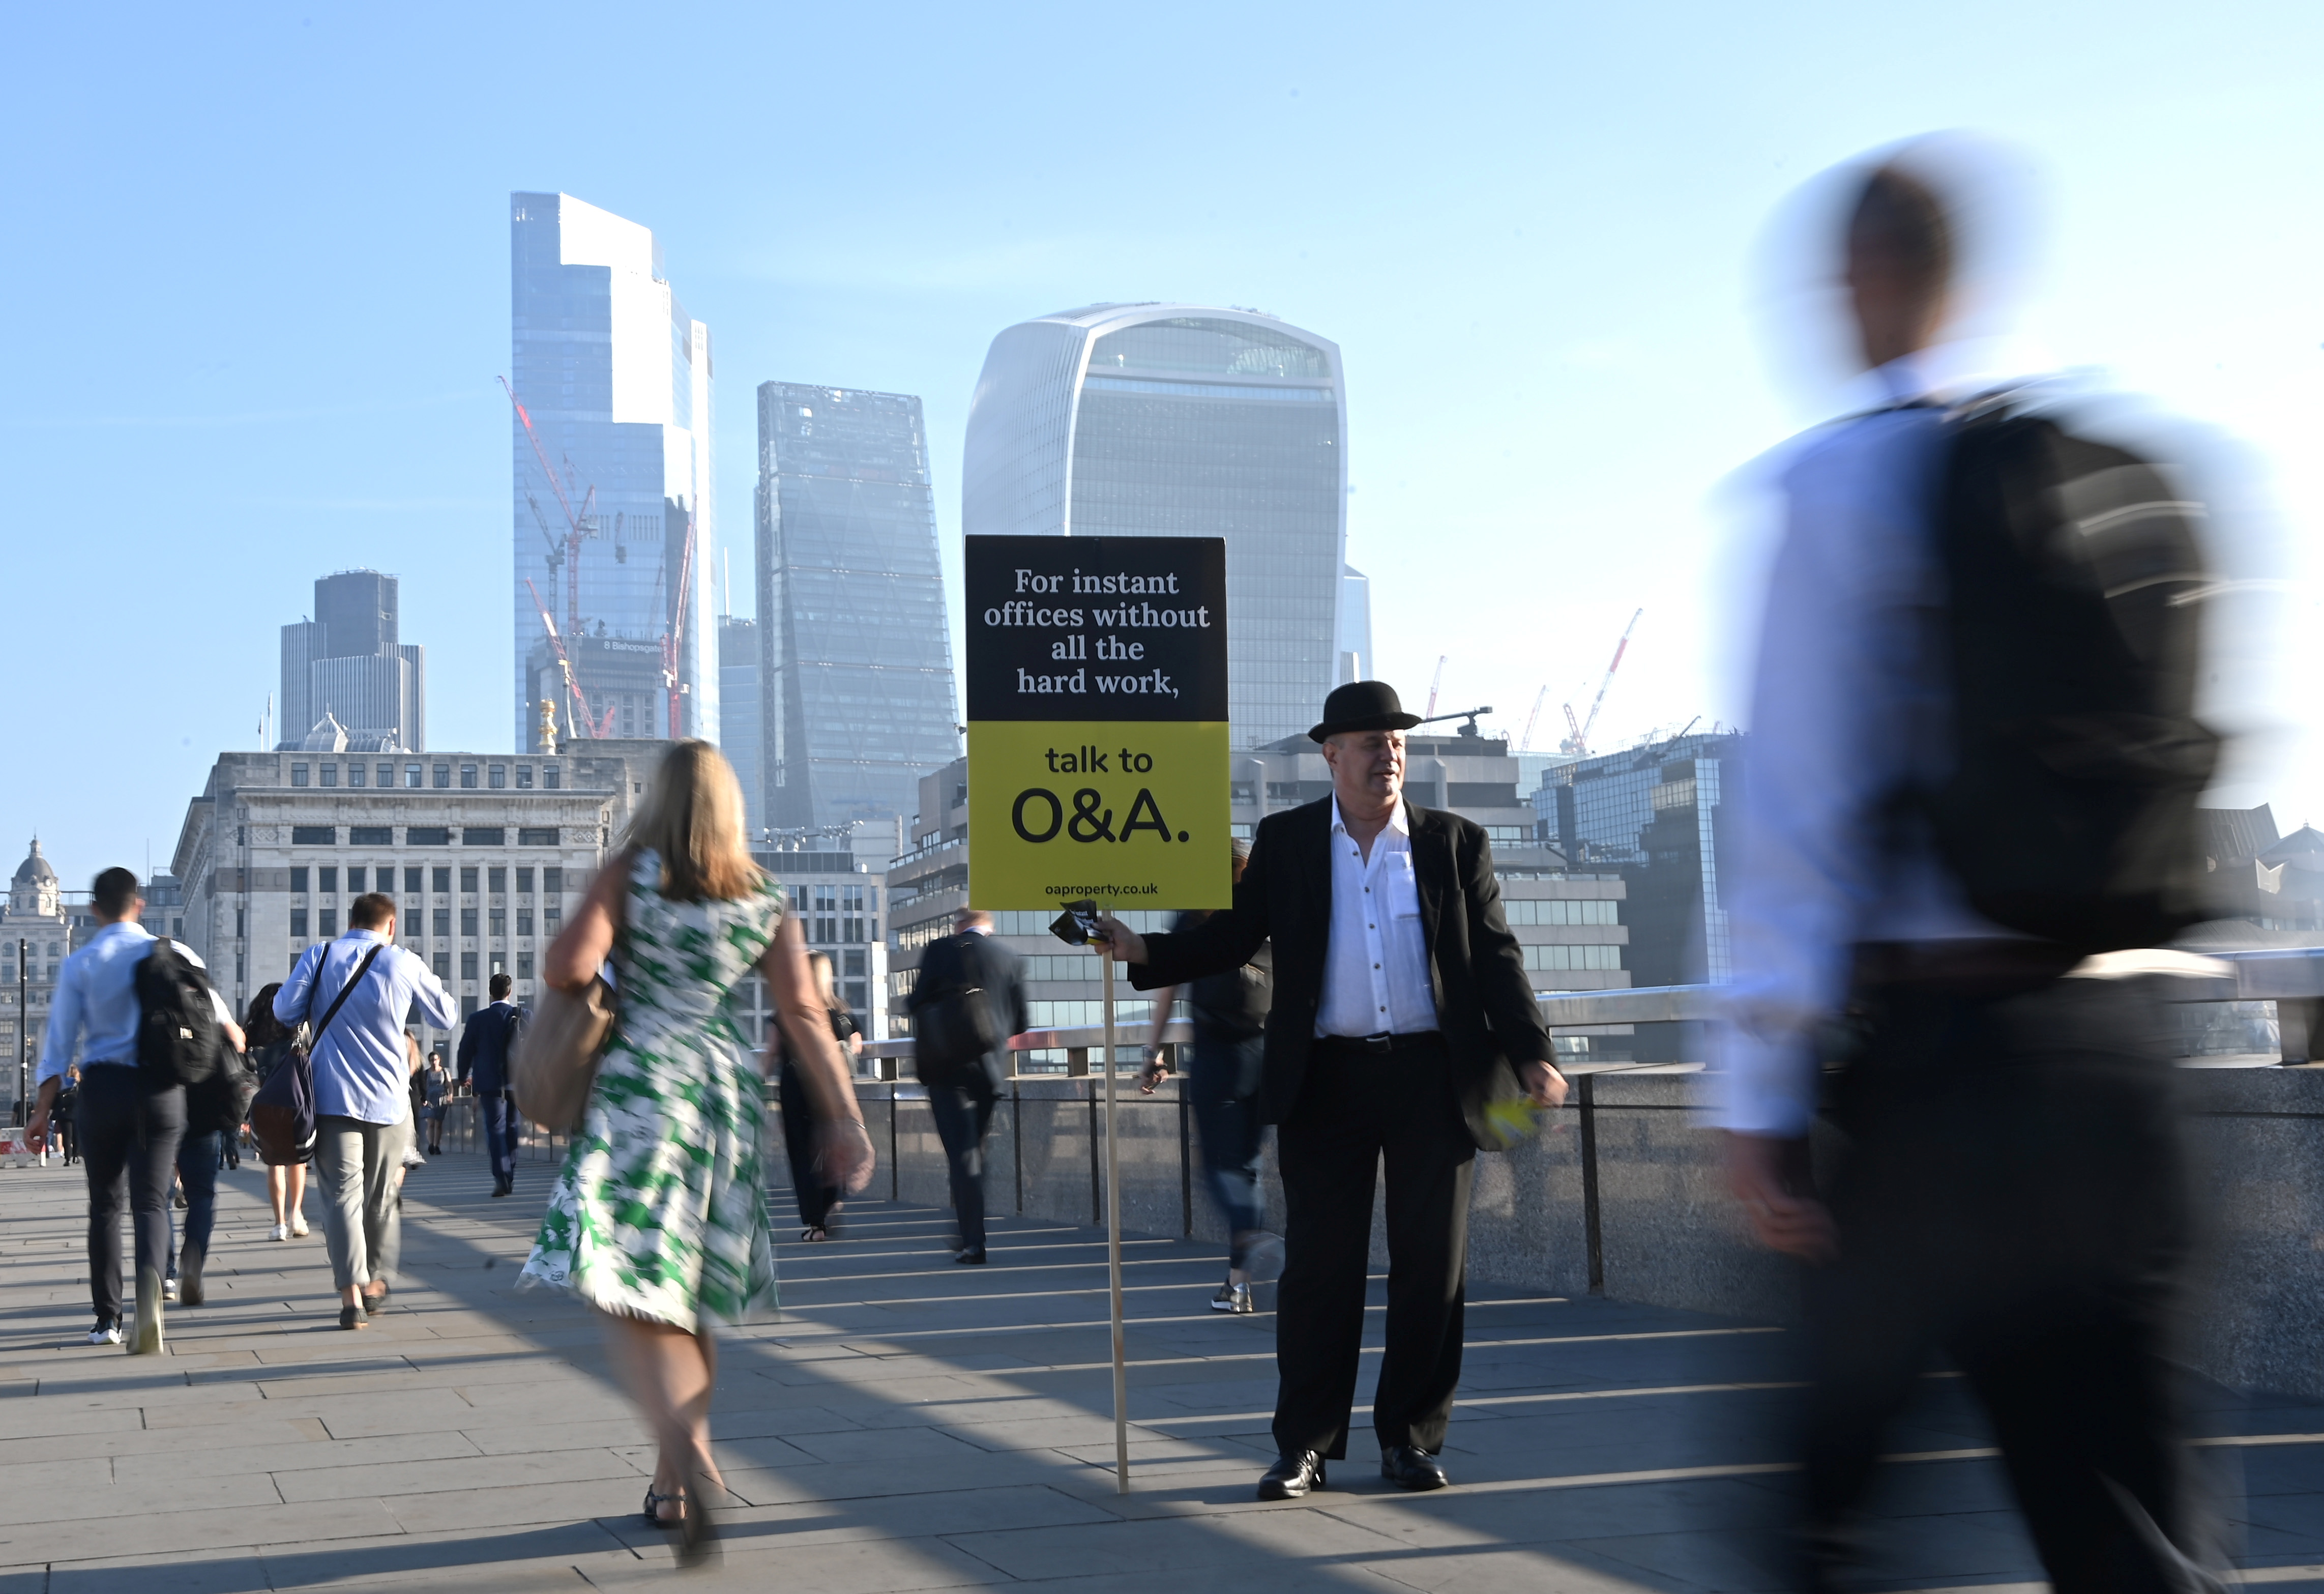 Workers pass by a sales person as they walk towards the City of London financial district as they cross London Bridge during the morning rush hour in London, Britain, September 8, 2021. REUTERS/Toby Melville